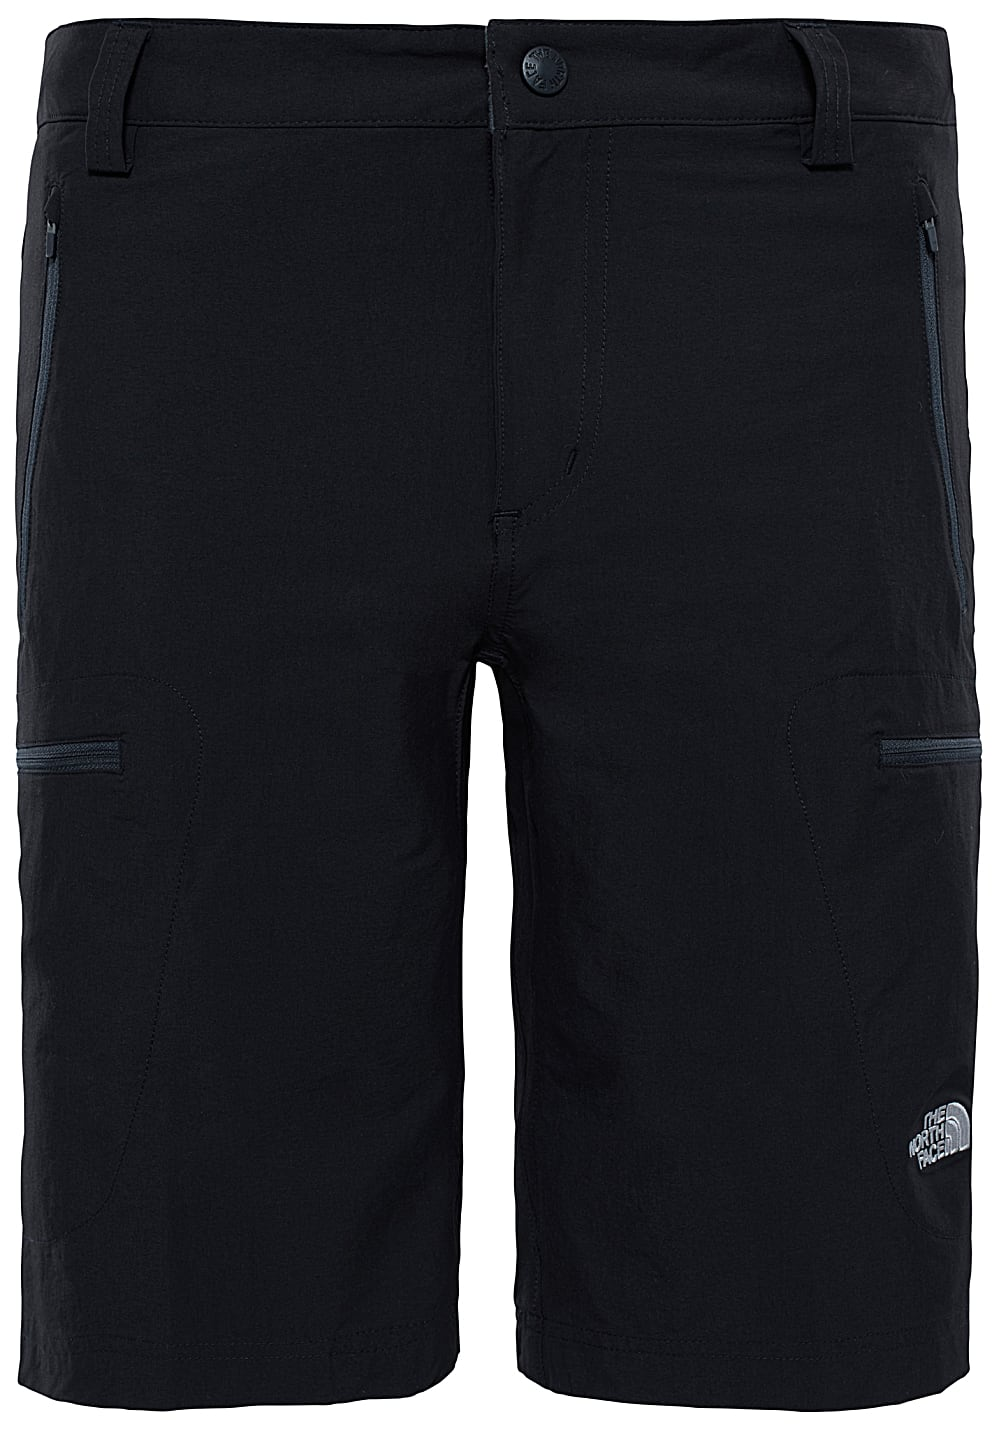 The North Face Exploration - Shorts für Herren Schwarz